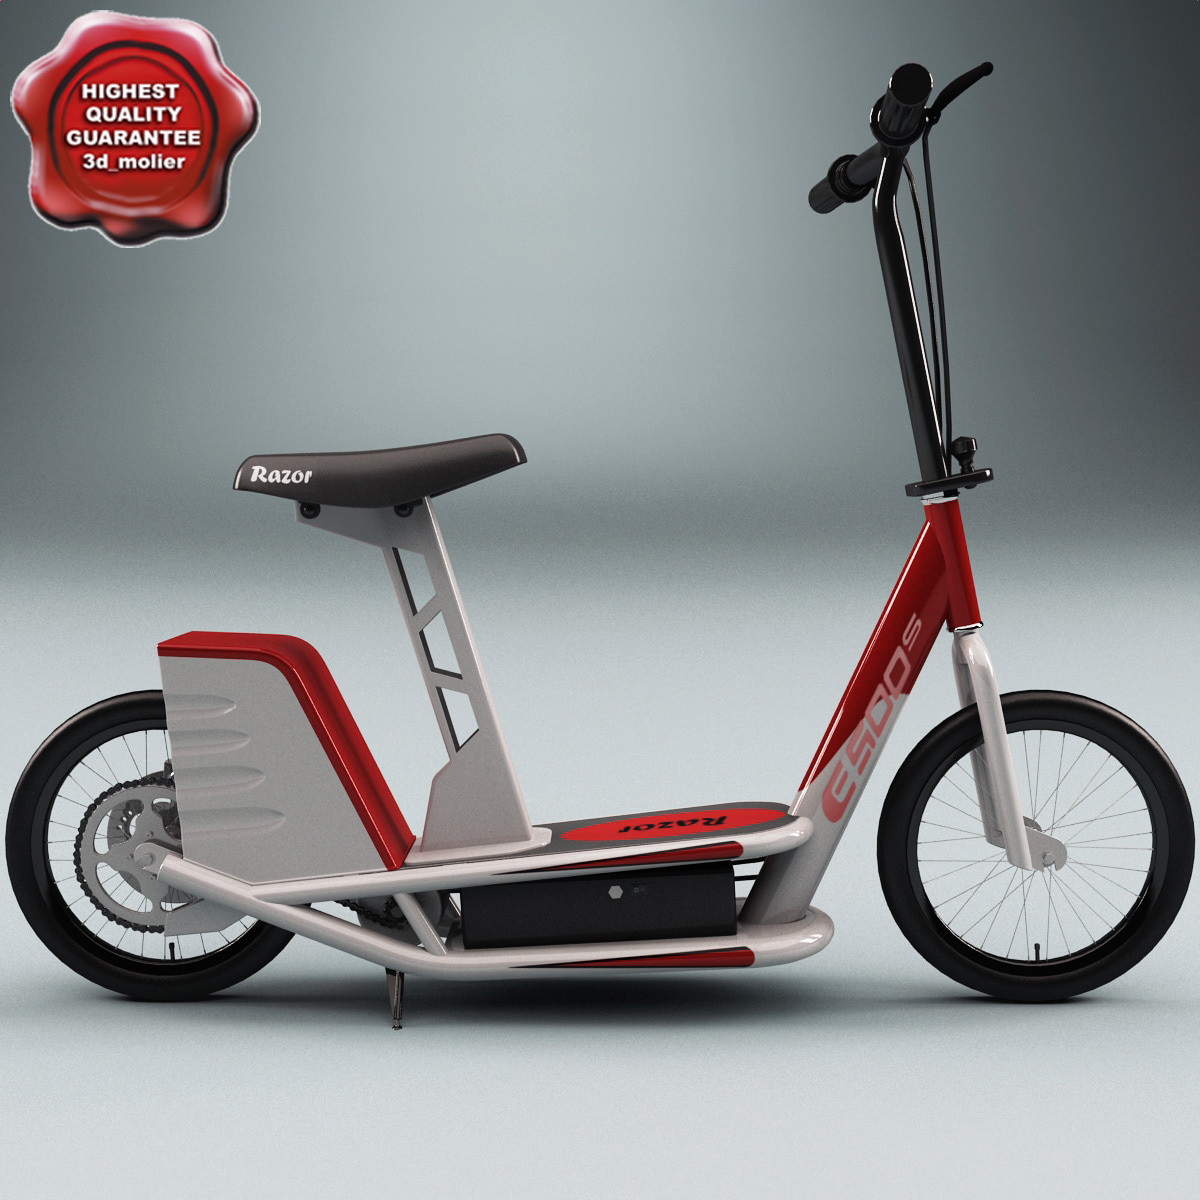 Razor_Electric_Scooter_E500S_00.jpg